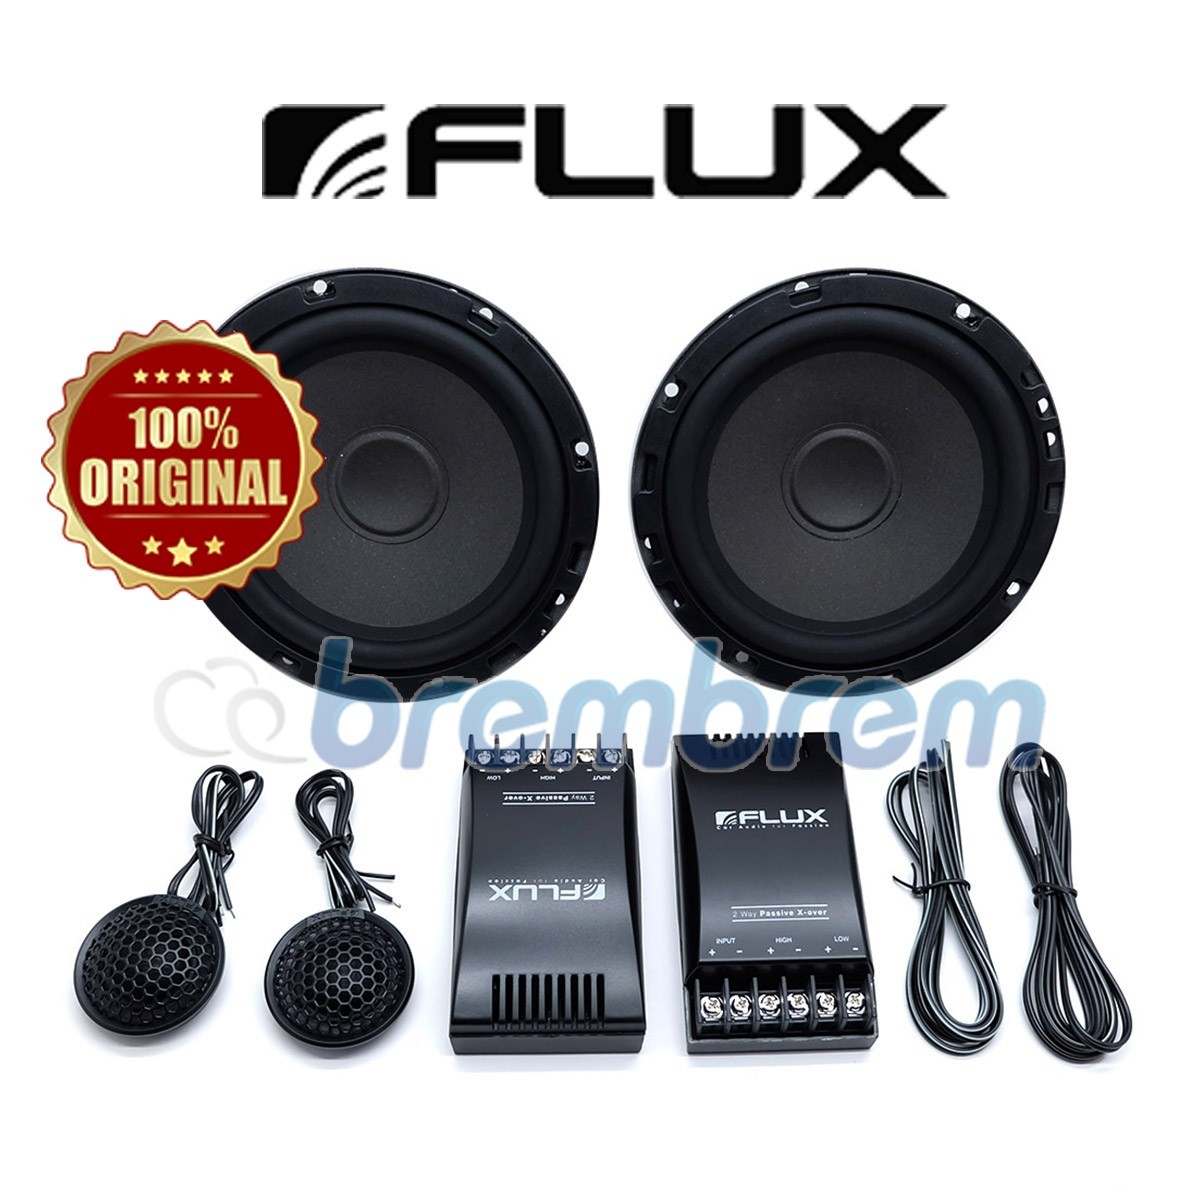 FLUX NEO 260 - SPEAKER 2 WAY